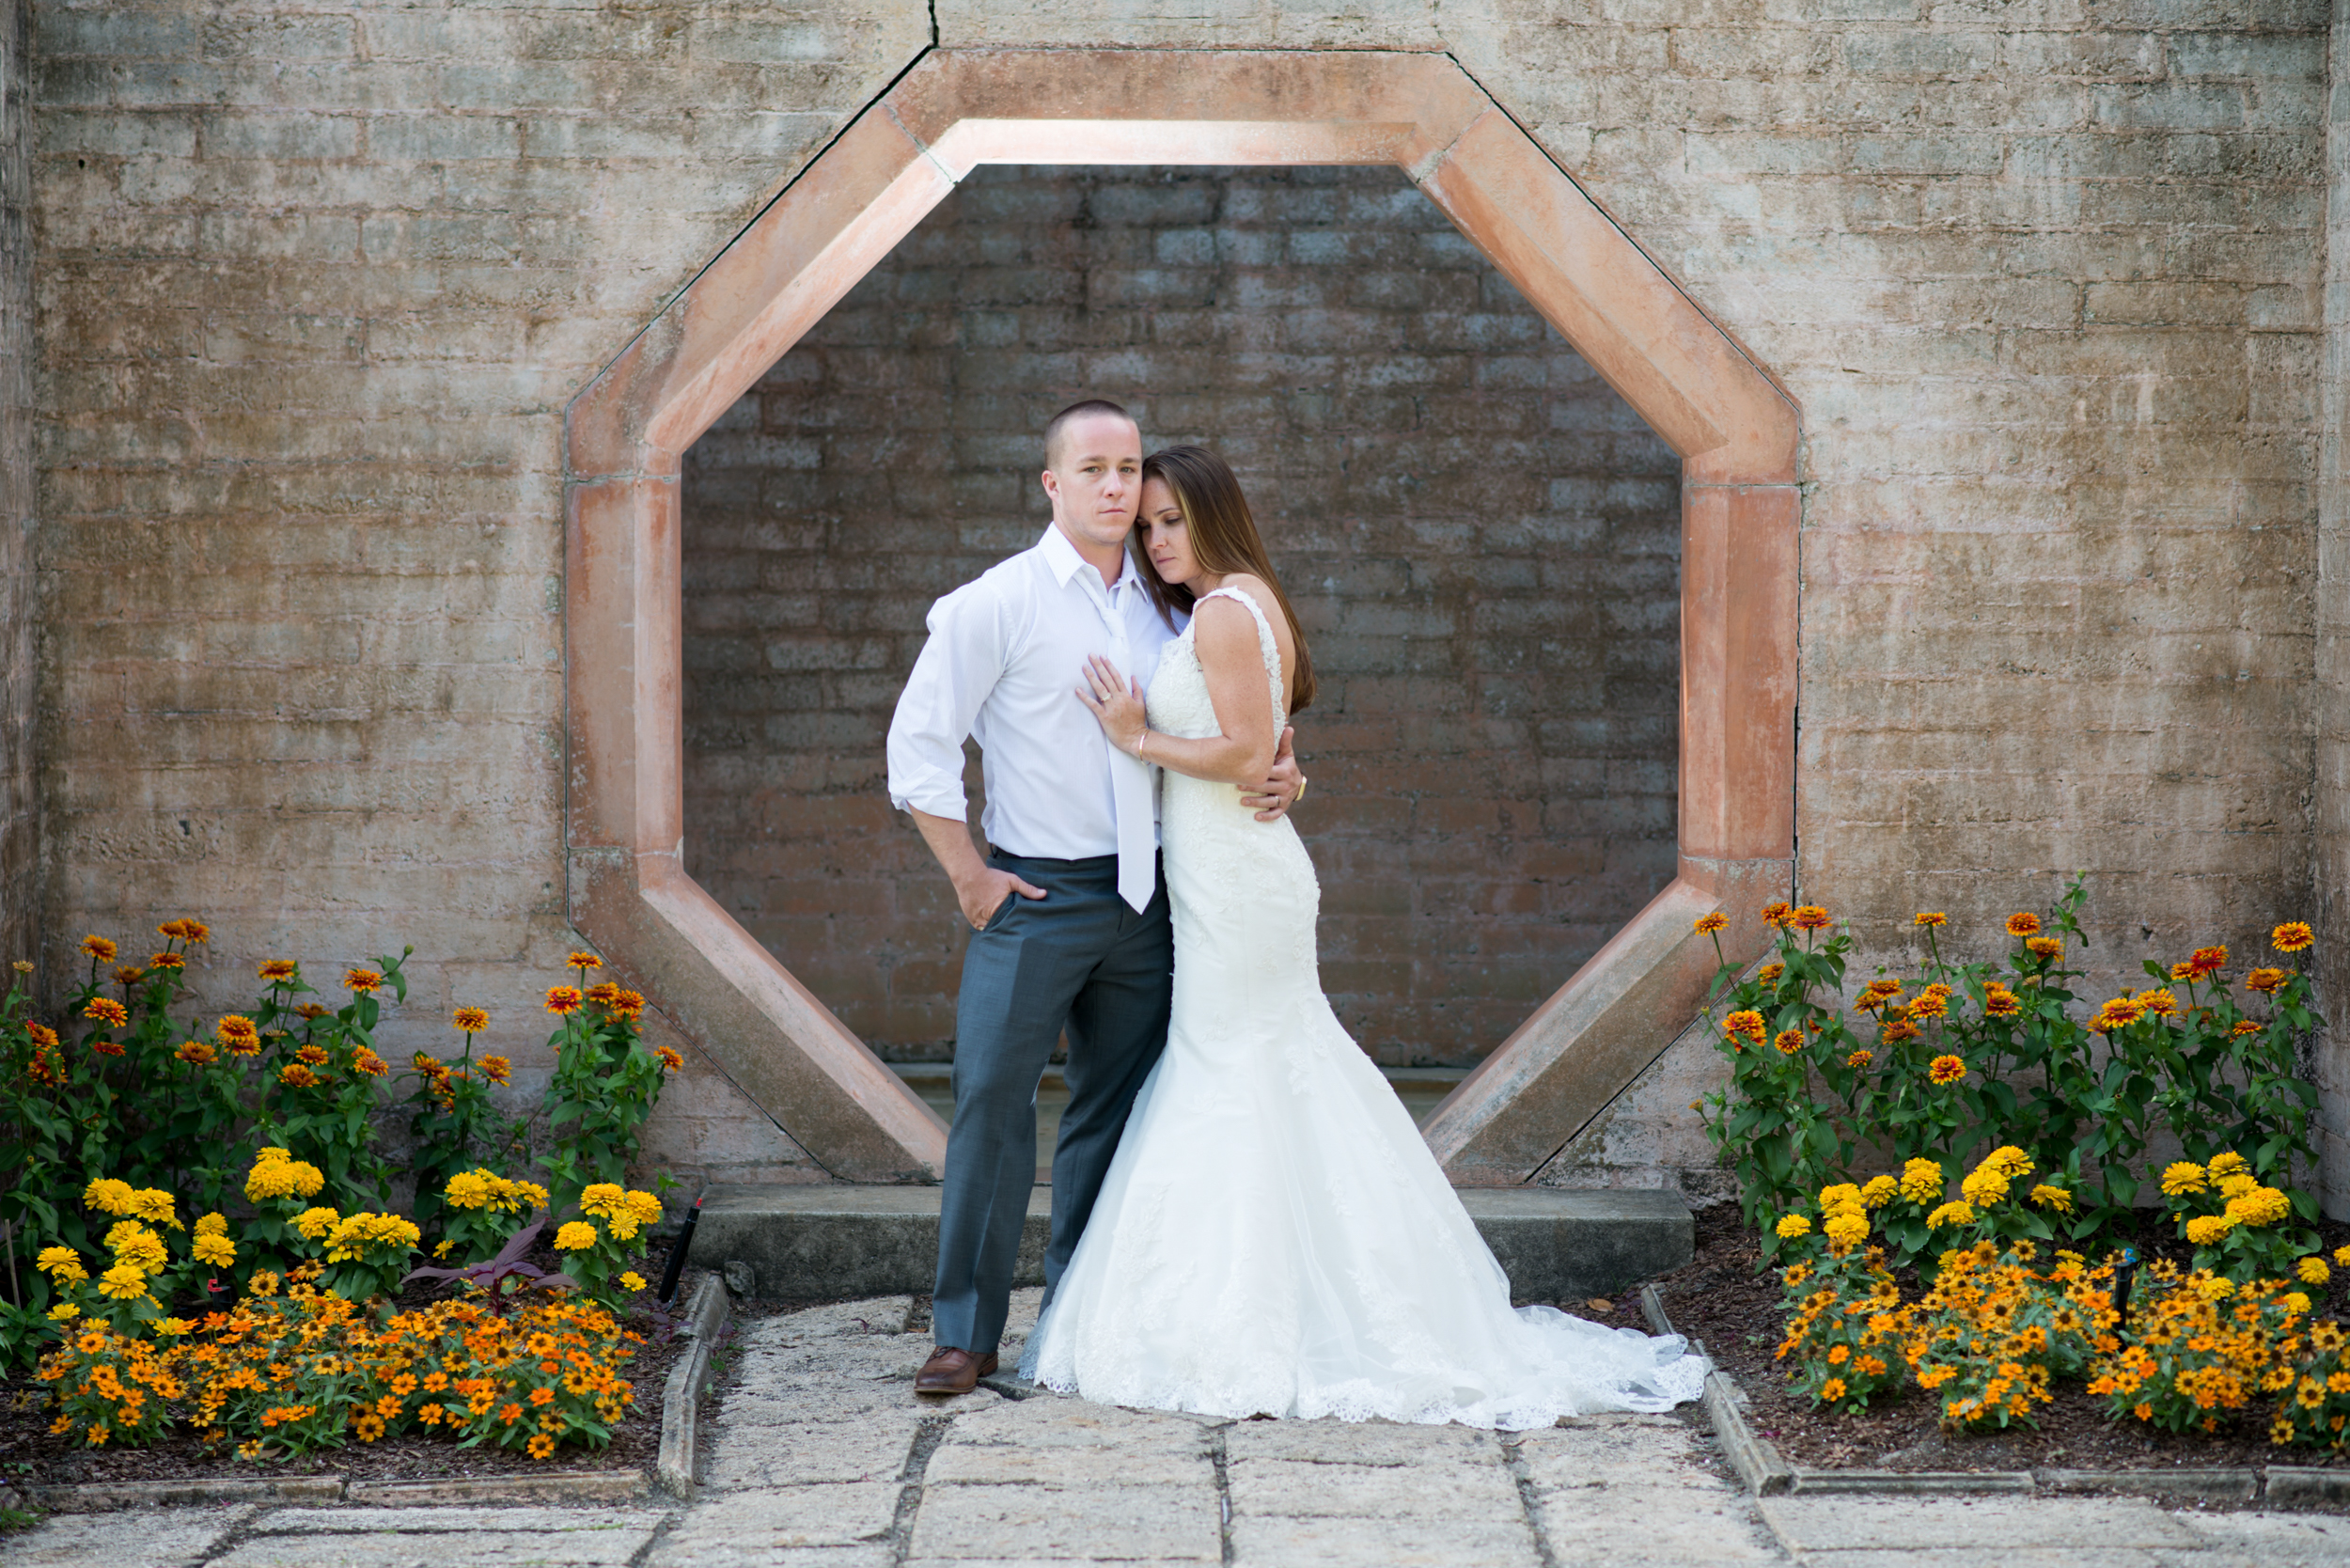 Wedding Photography at Bok Towers.